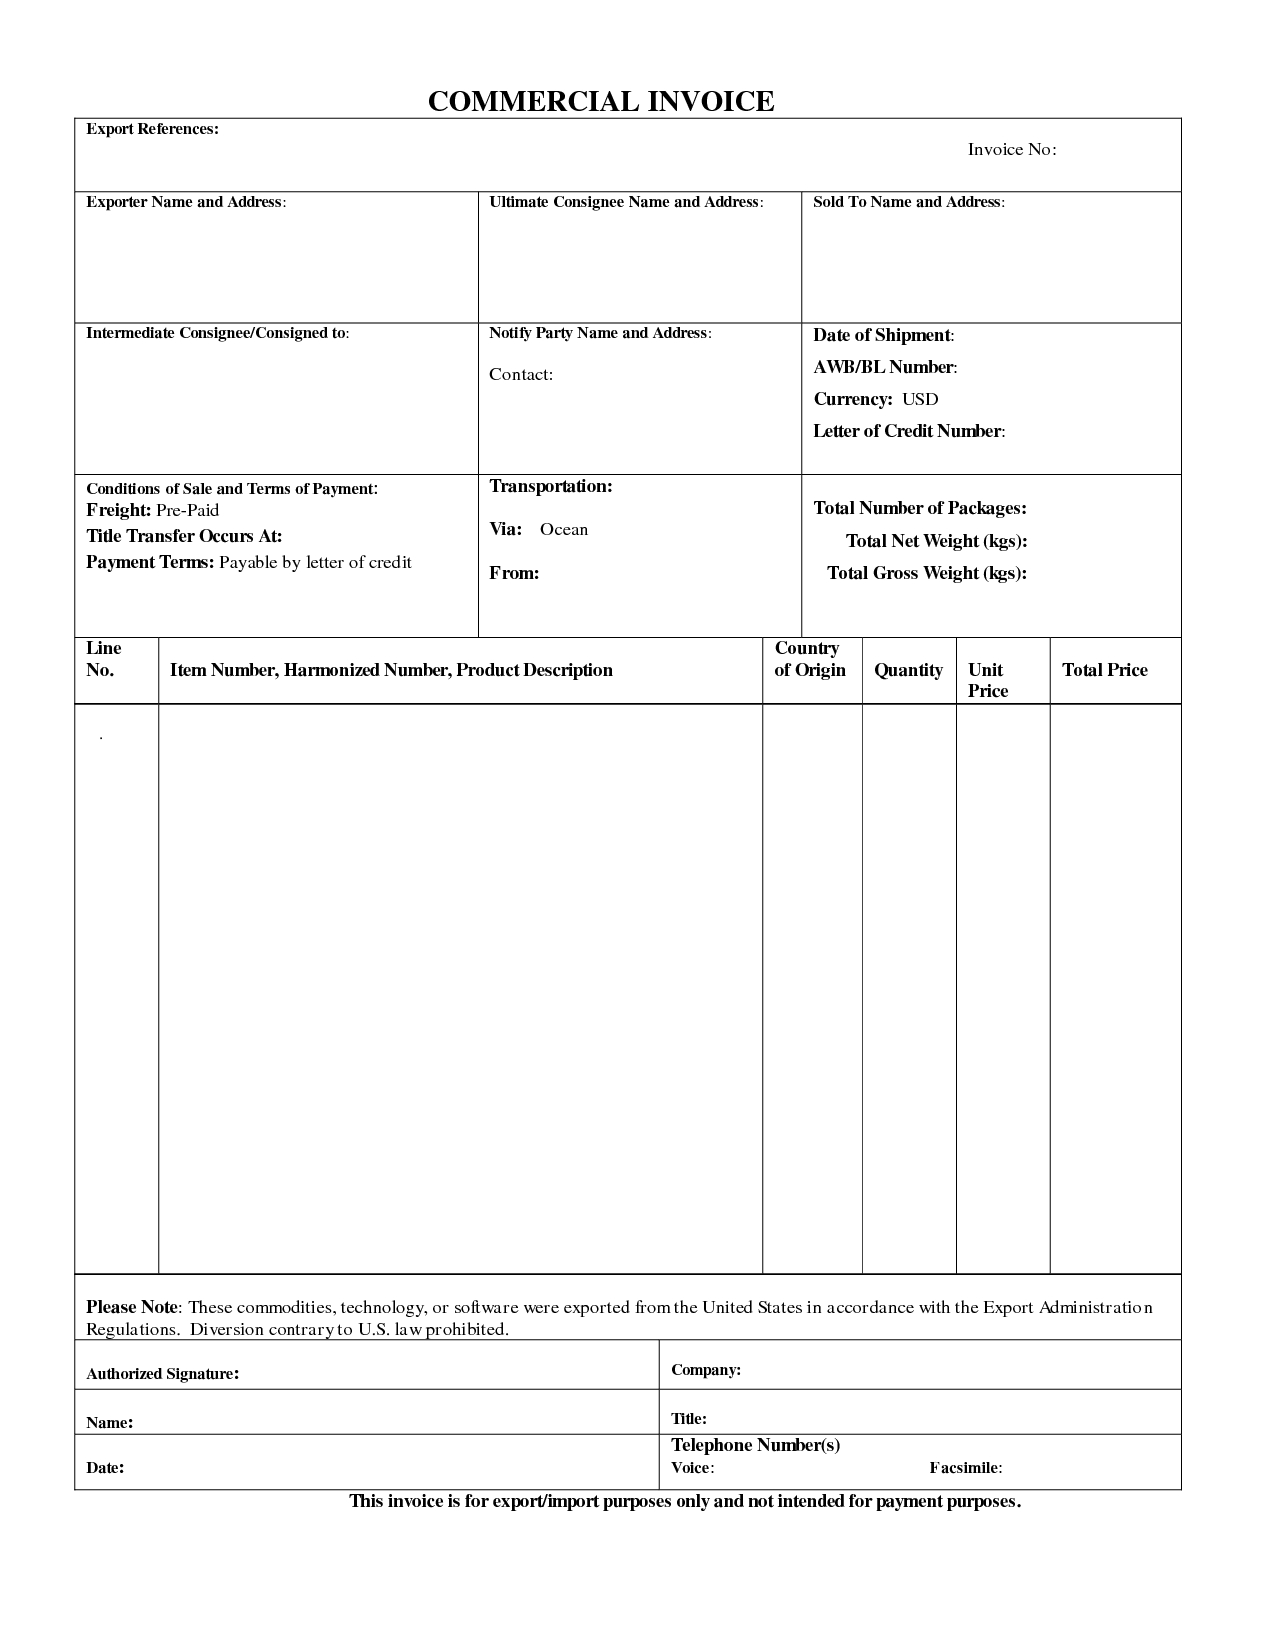 sample invoice form bafflingdynu export commercial invoice template